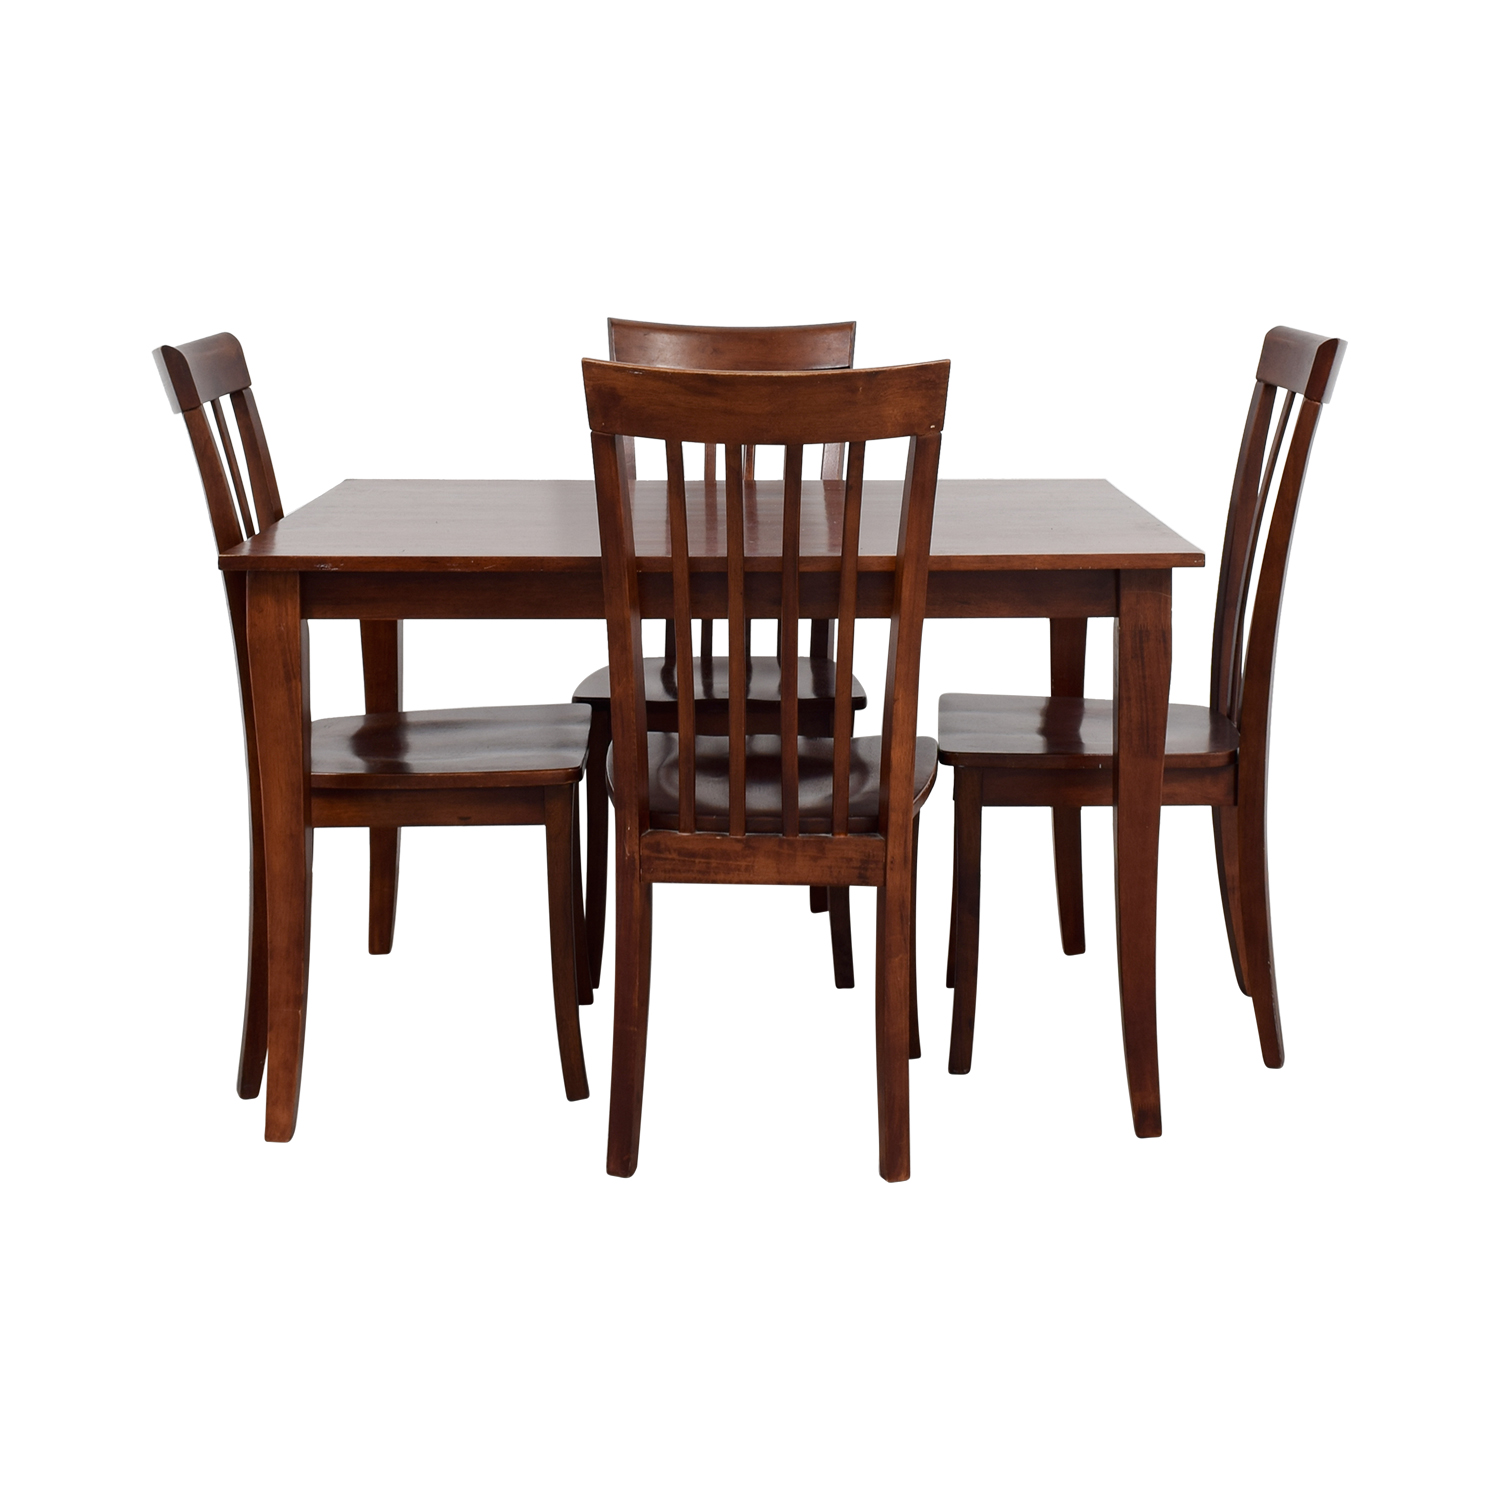 Wooden Dining Set ~ Wood dining table and chairs set